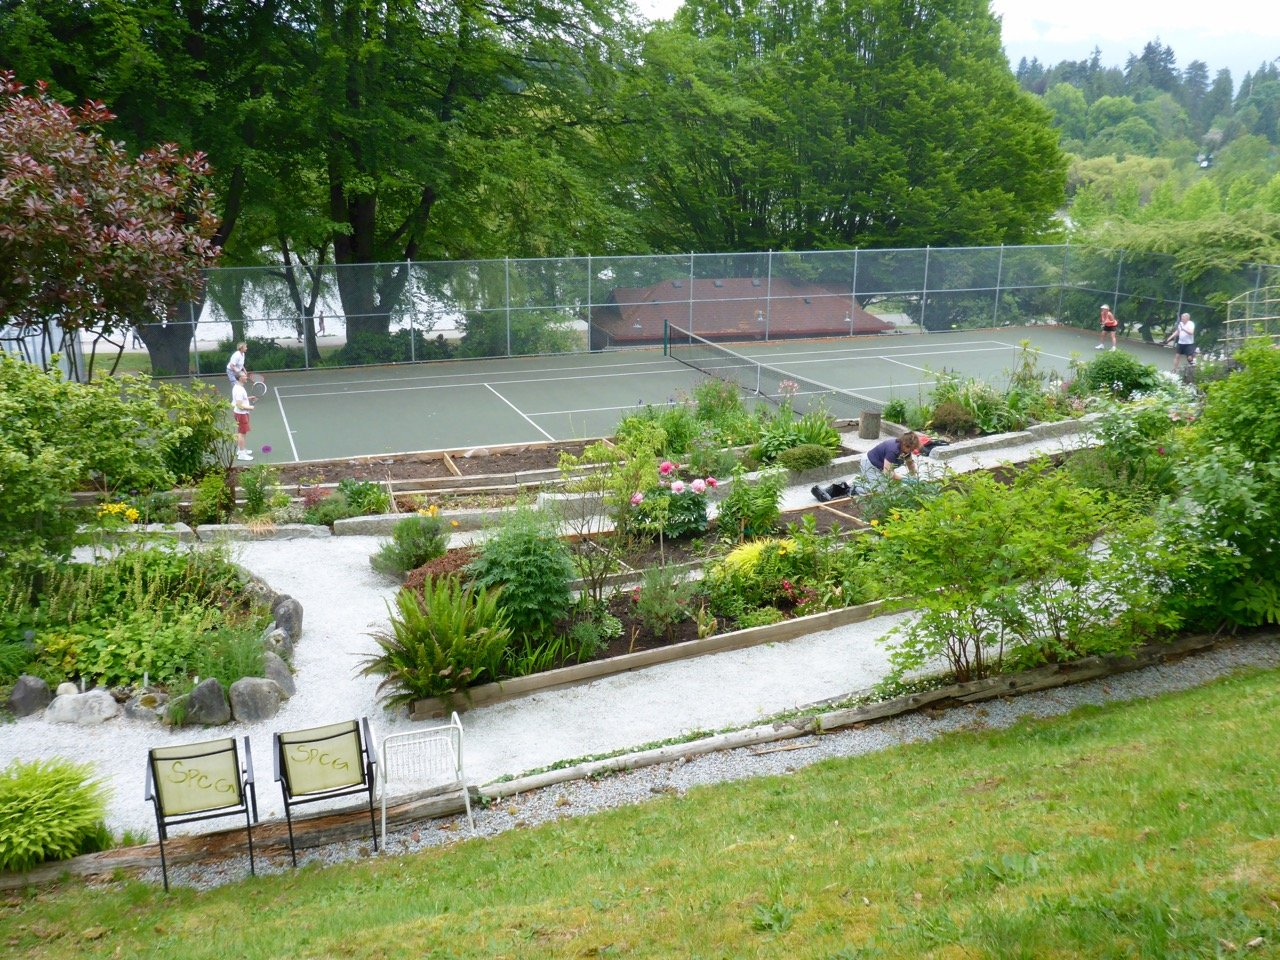 tennis-tourist-vancouver-lost-lagoon-tennis-courts-and-gardens-from-above-teri-church